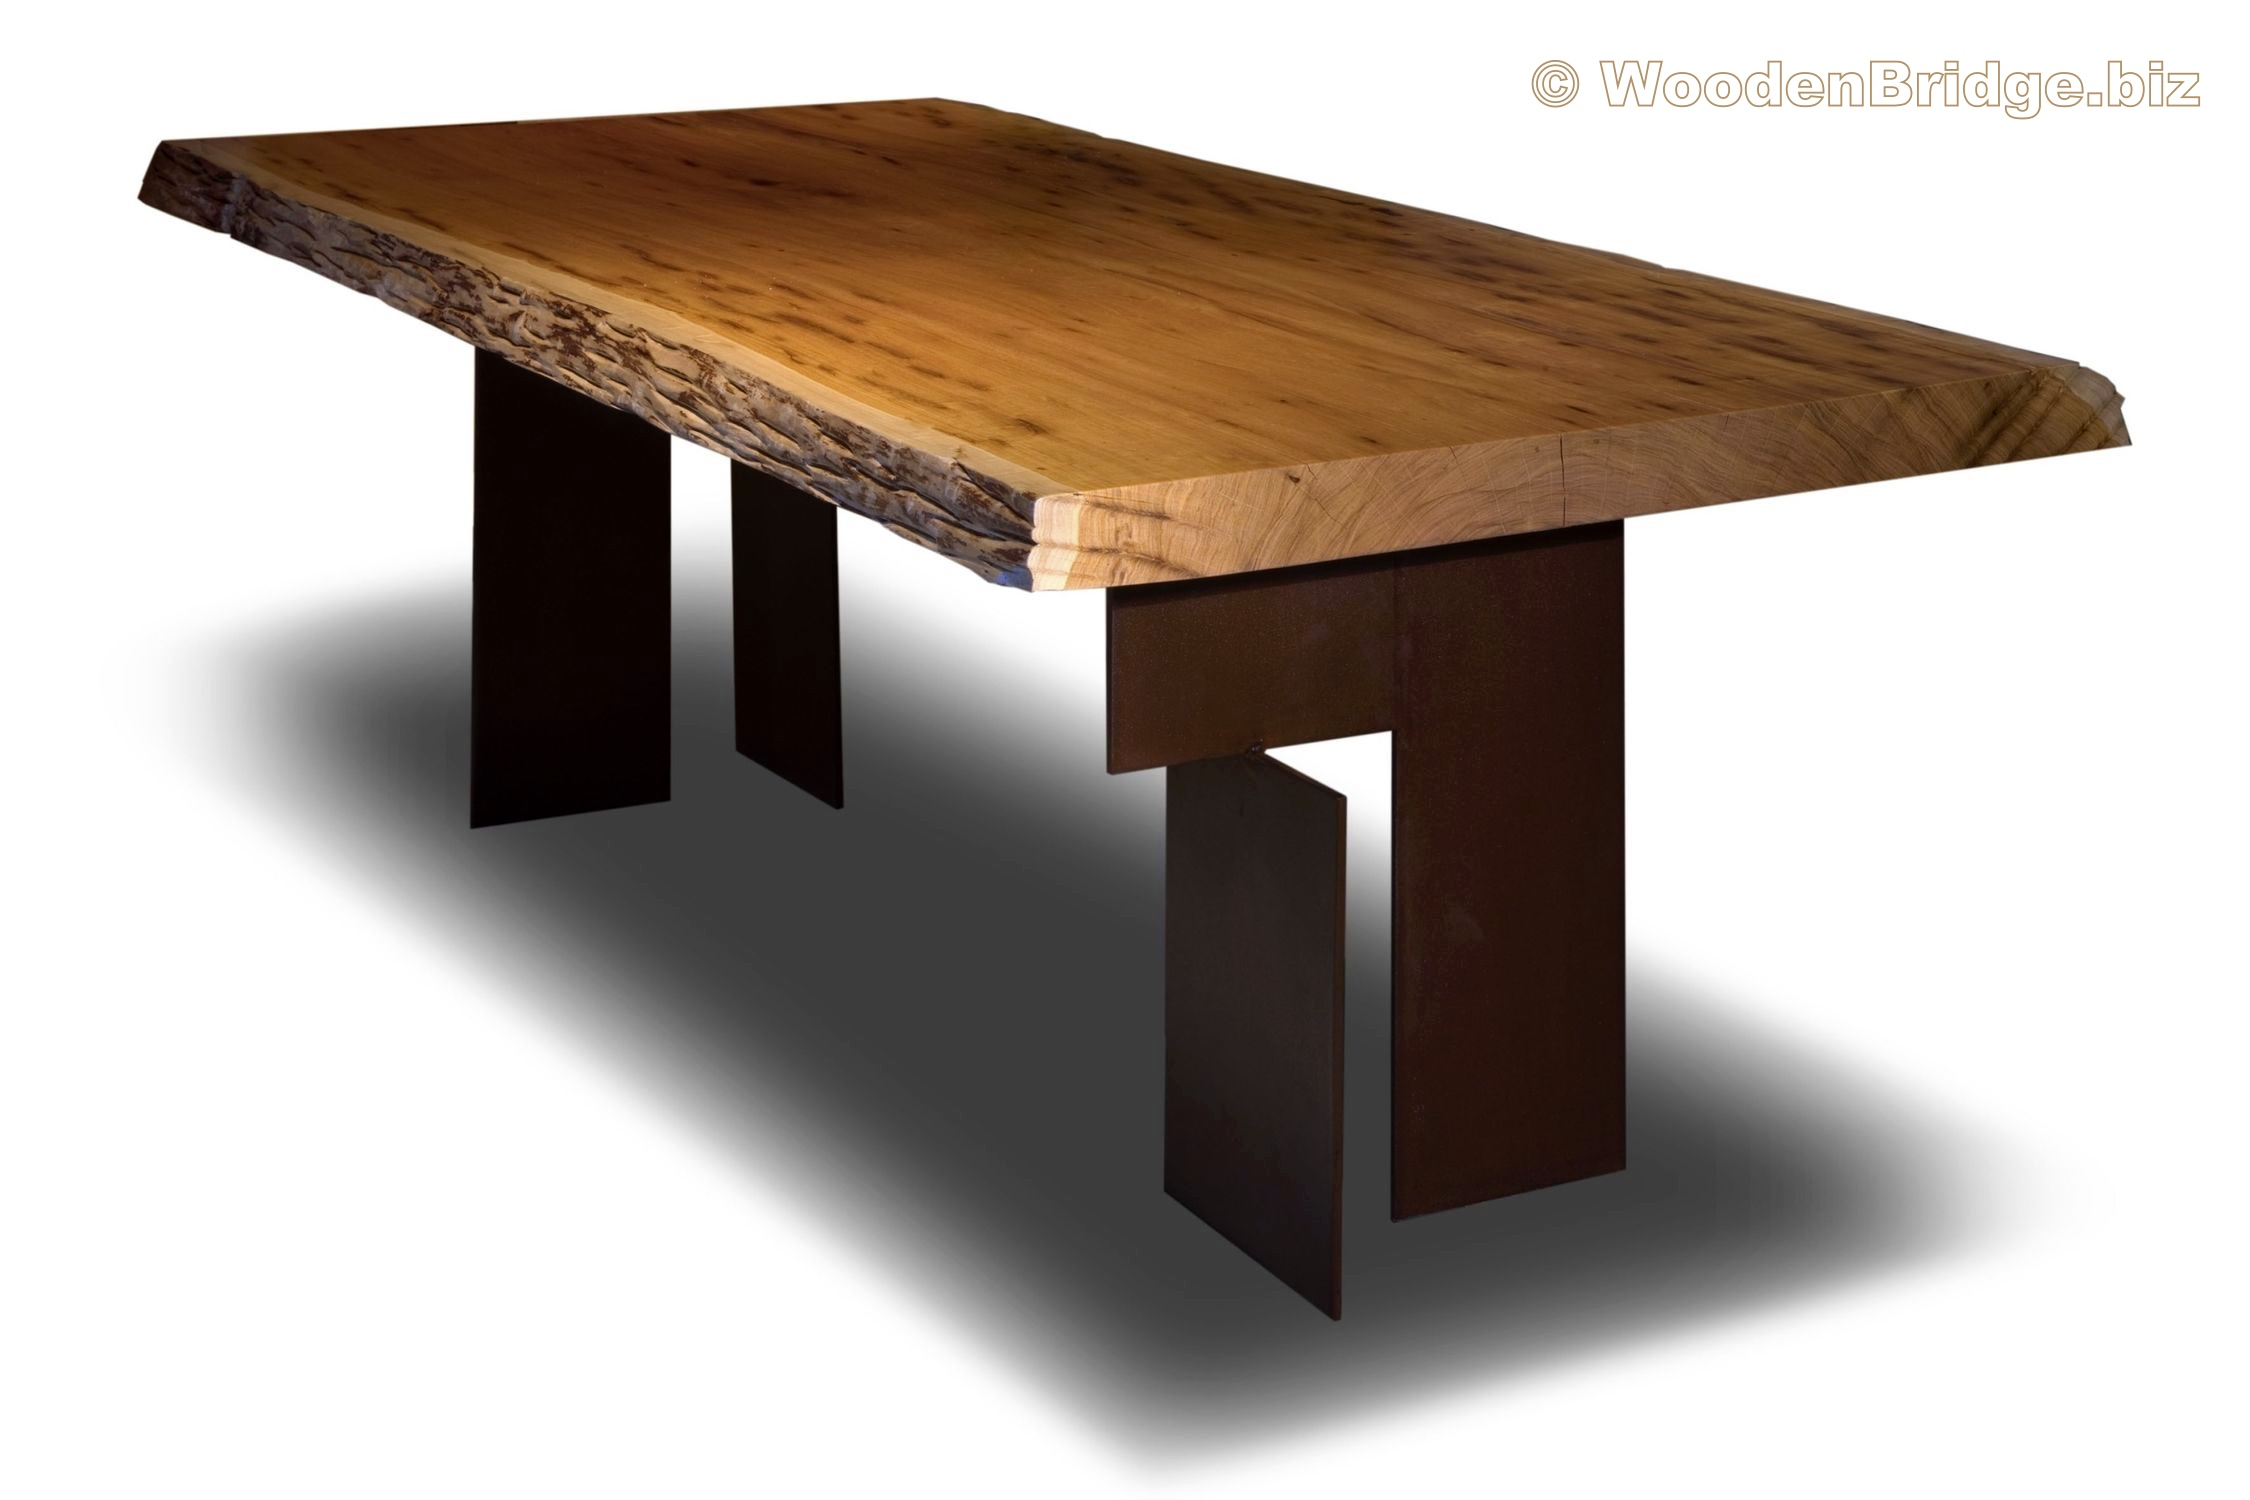 Reclaimed Wood Dining Table Ideas – 2250 x 1500